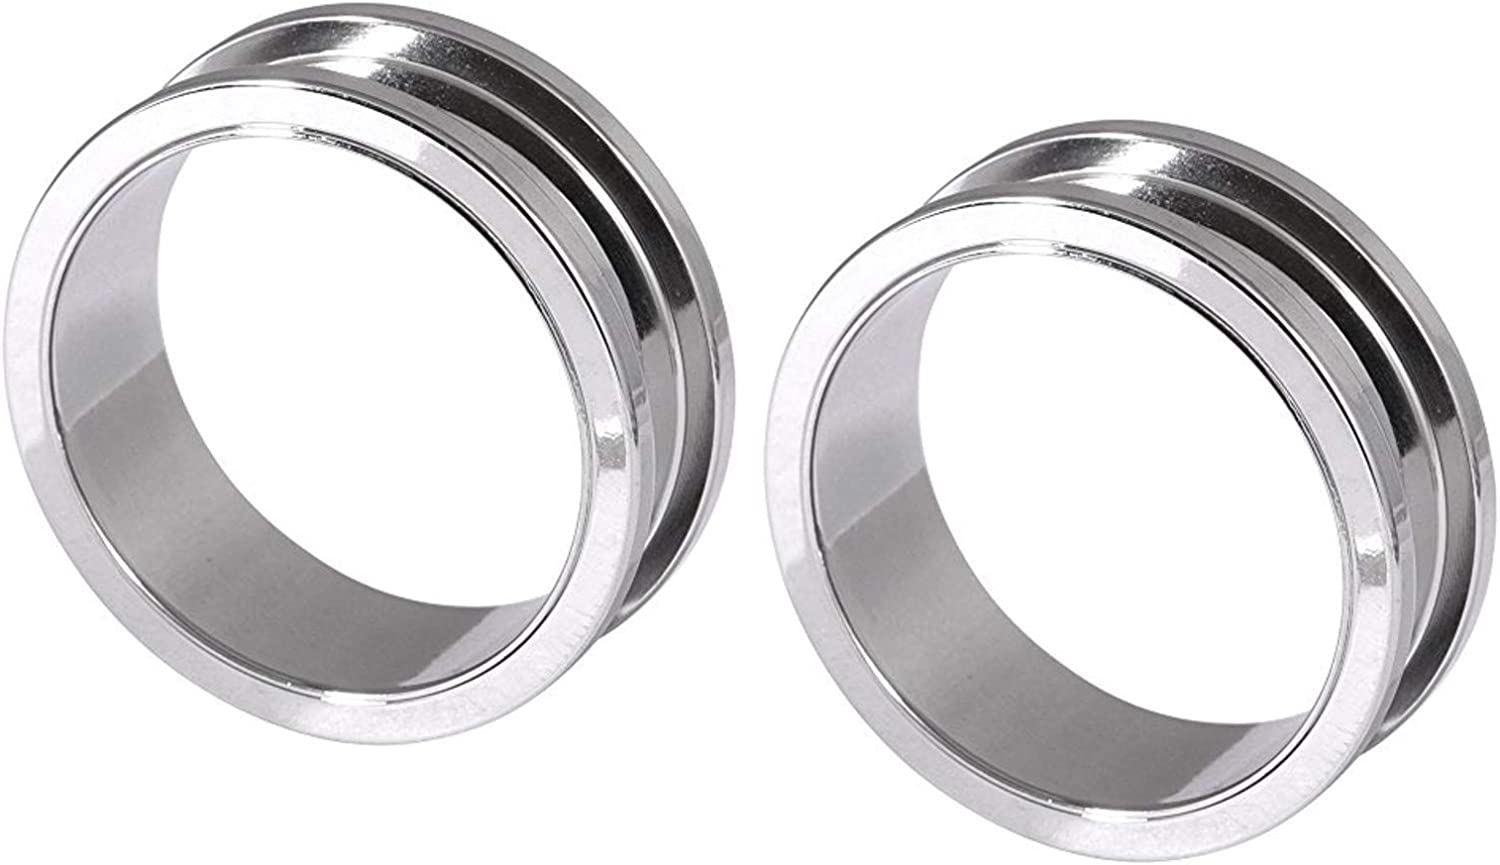 Zaya Body Jewelry Pair of Steel Screw Ear Stretching Tunnels Gauges Plugs 28mm 32mm 35mm 38mm 42mm 2 inches